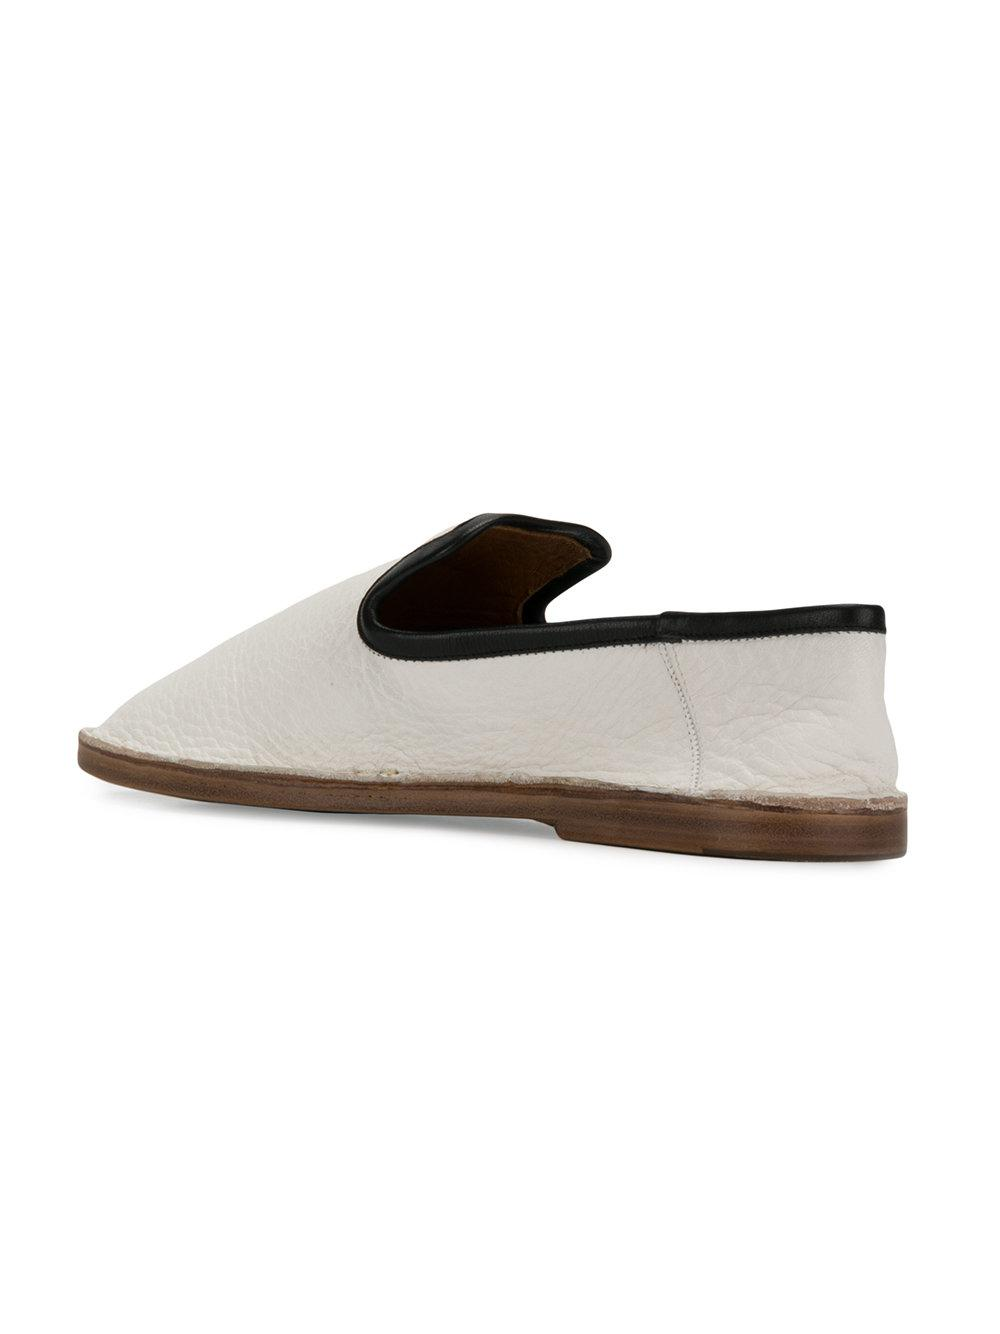 smooth slip-on loafers - White Joseph BvWnBFh94